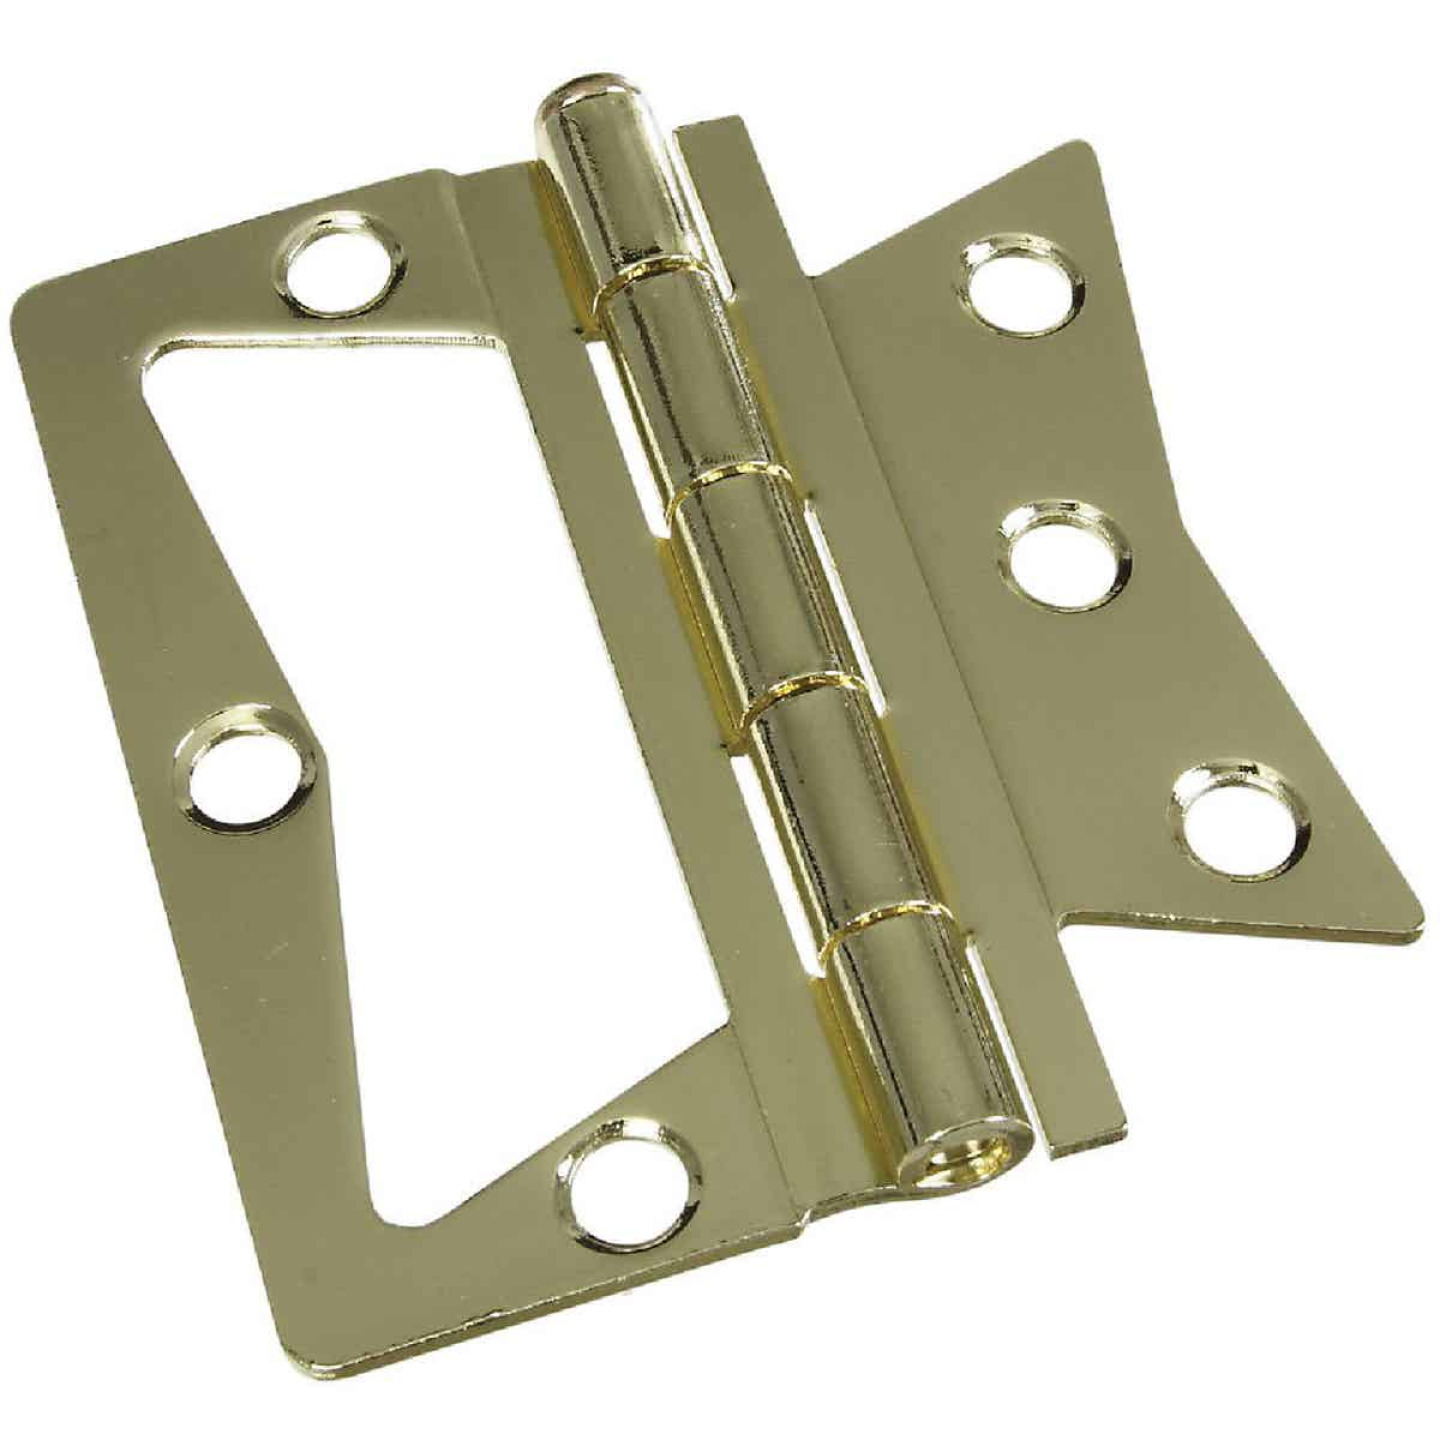 National 3-1/2 In. x 3-1/2 In. Non-Mortise Hinge (2 Count) Image 1